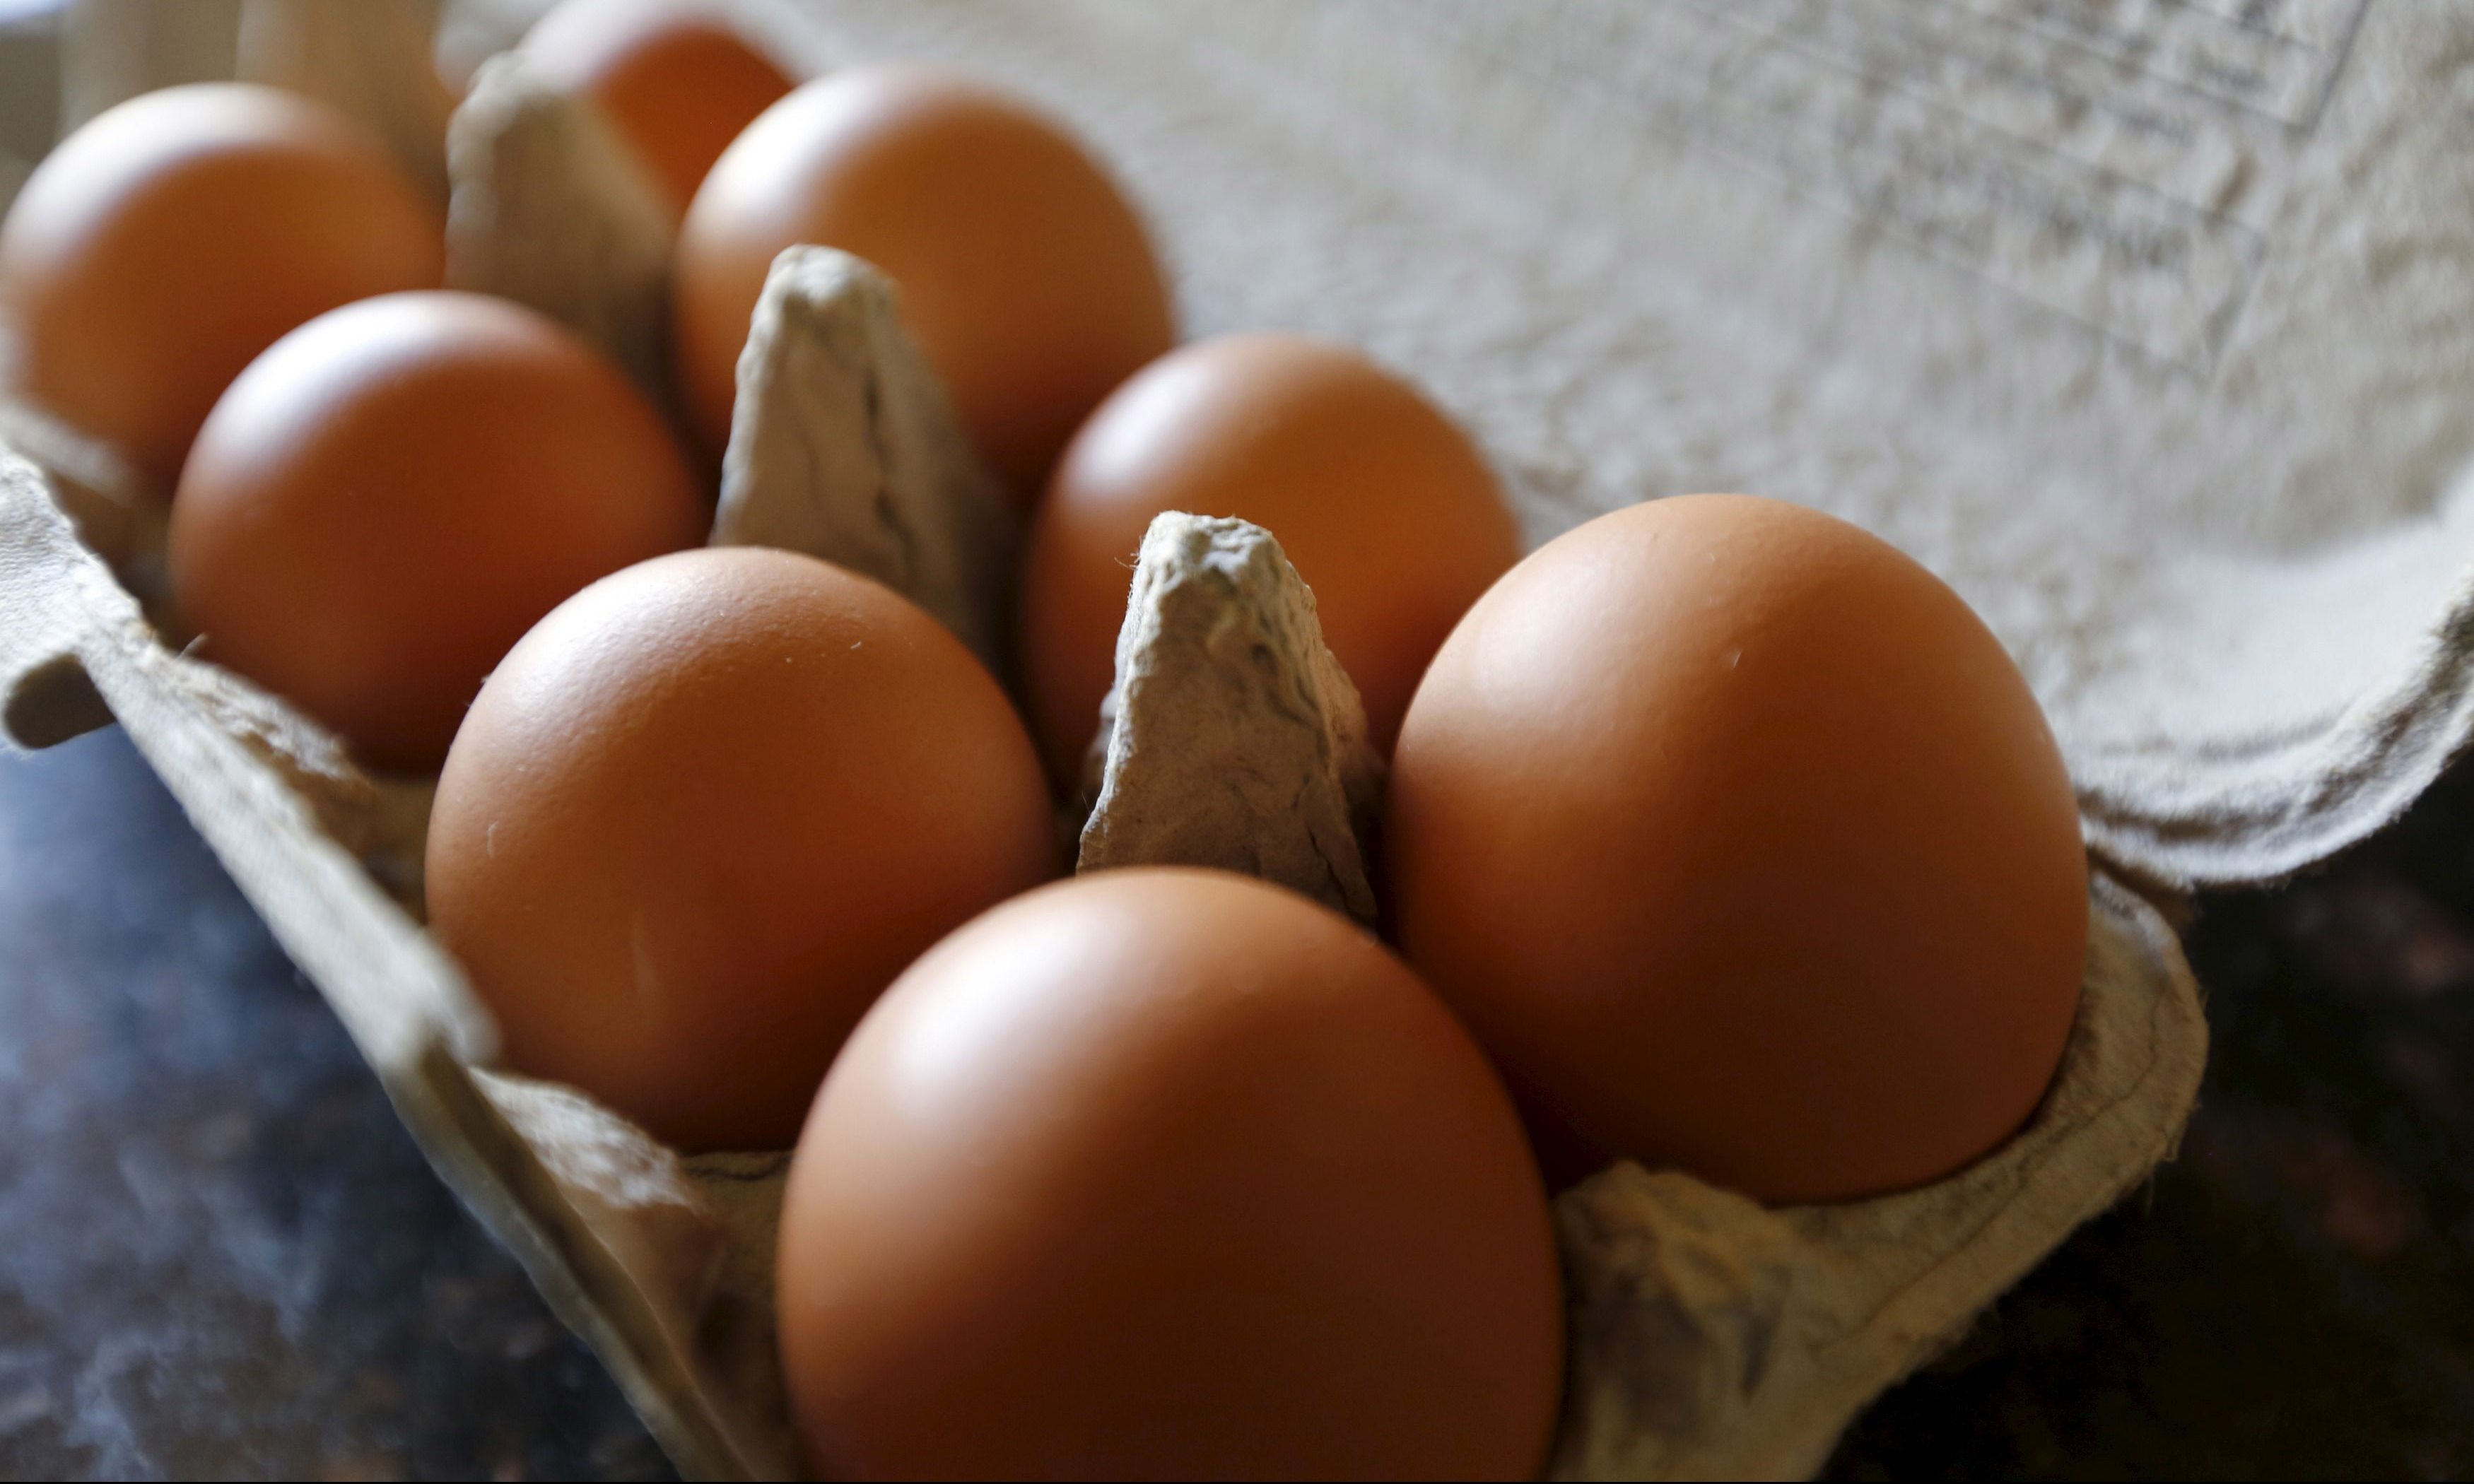 Egg recall on salmonella fears